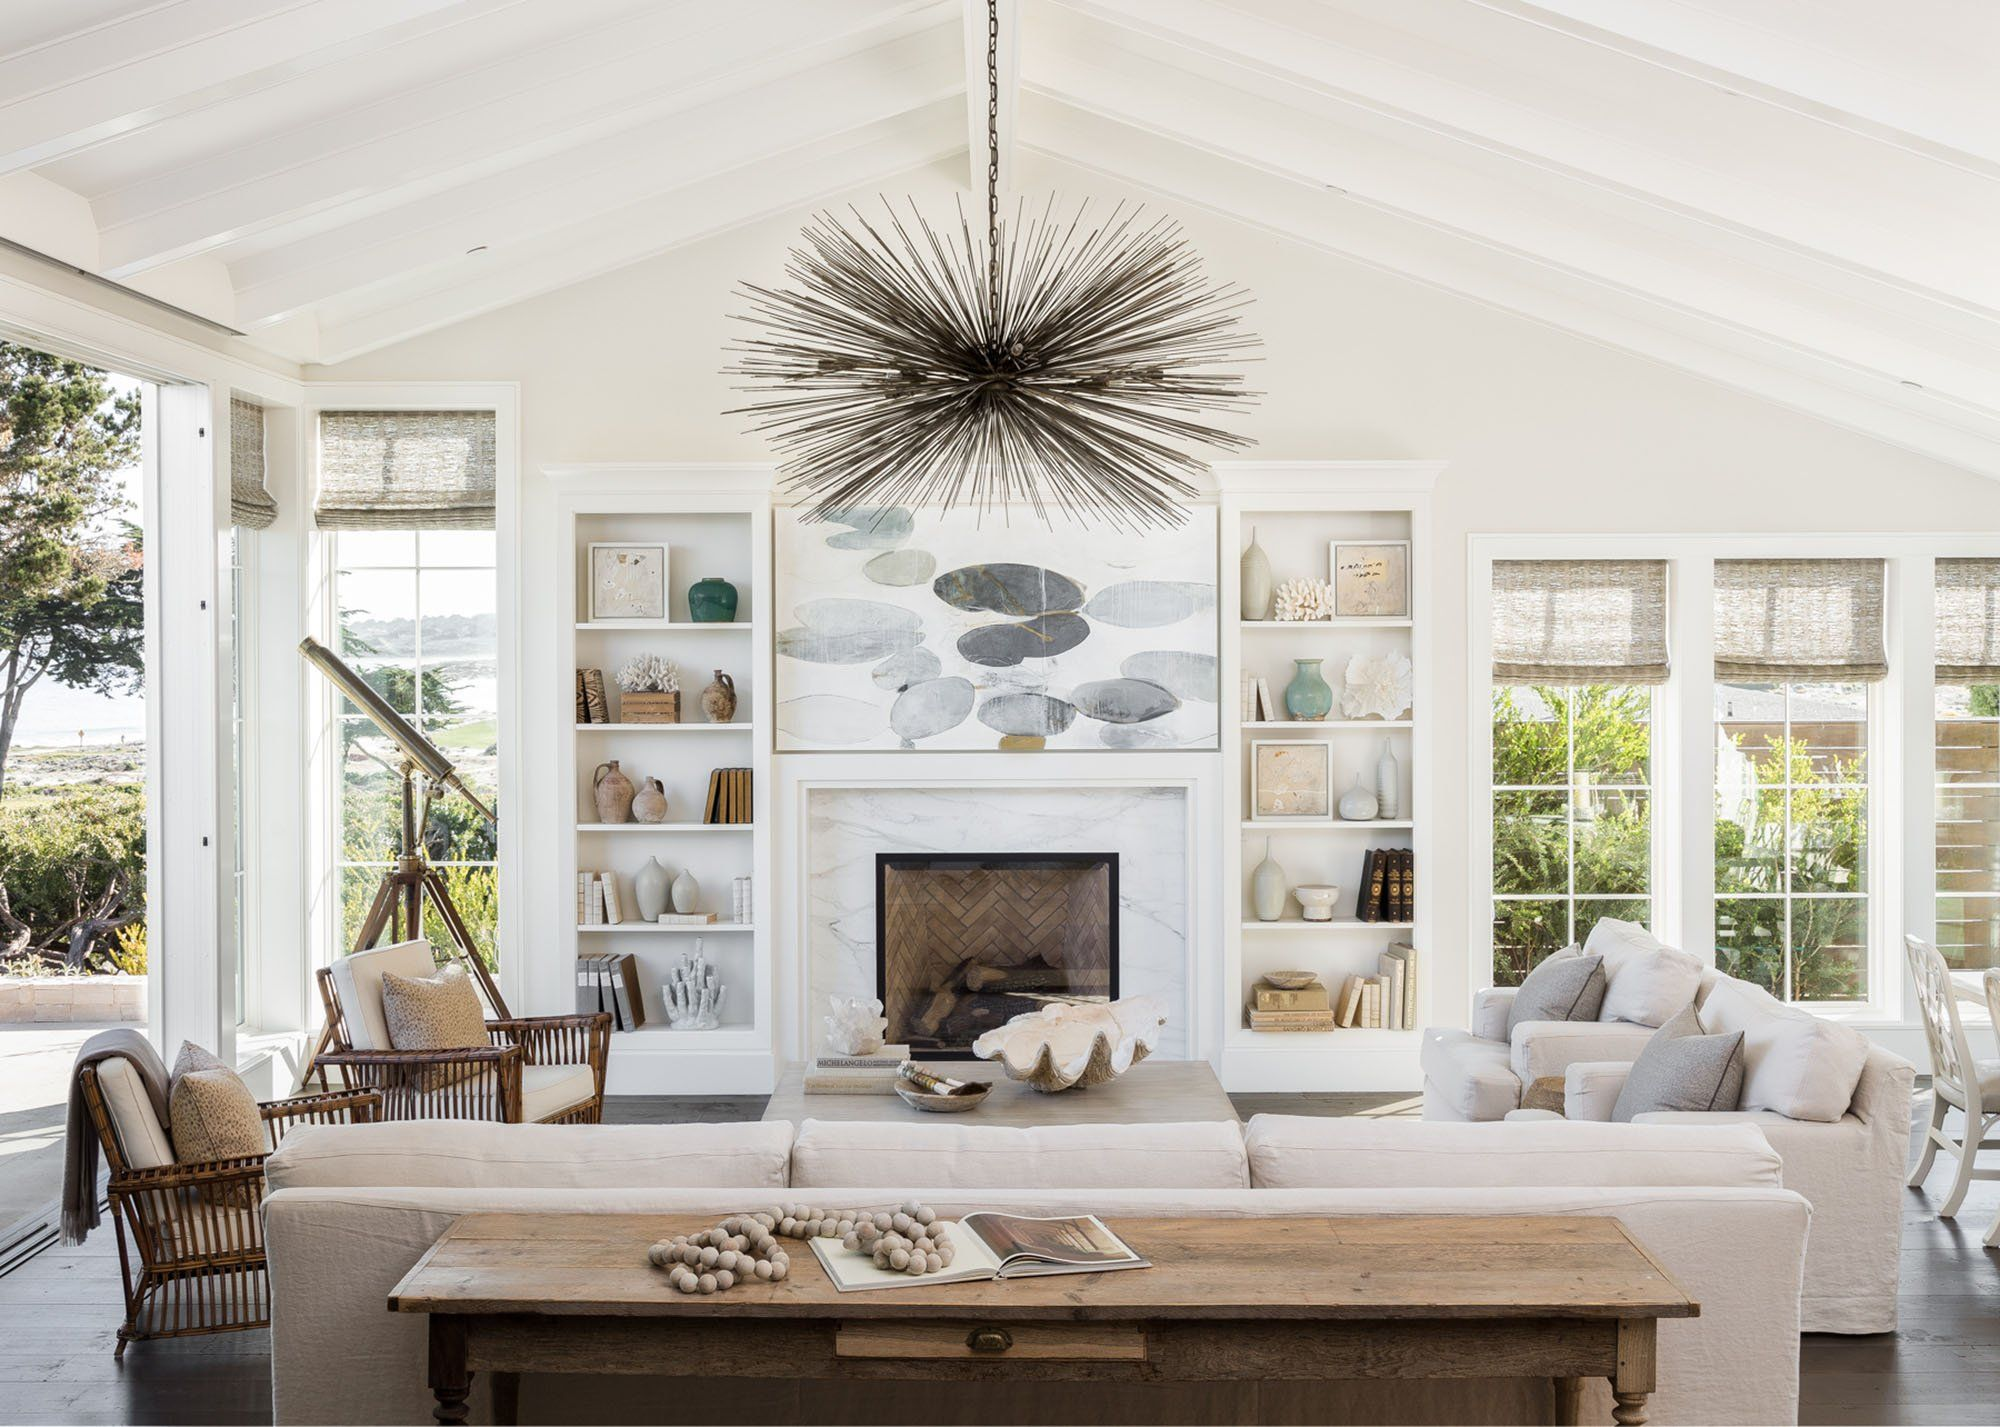 PEBBLE BEACH, CA | Home, Interior design, Spring living room